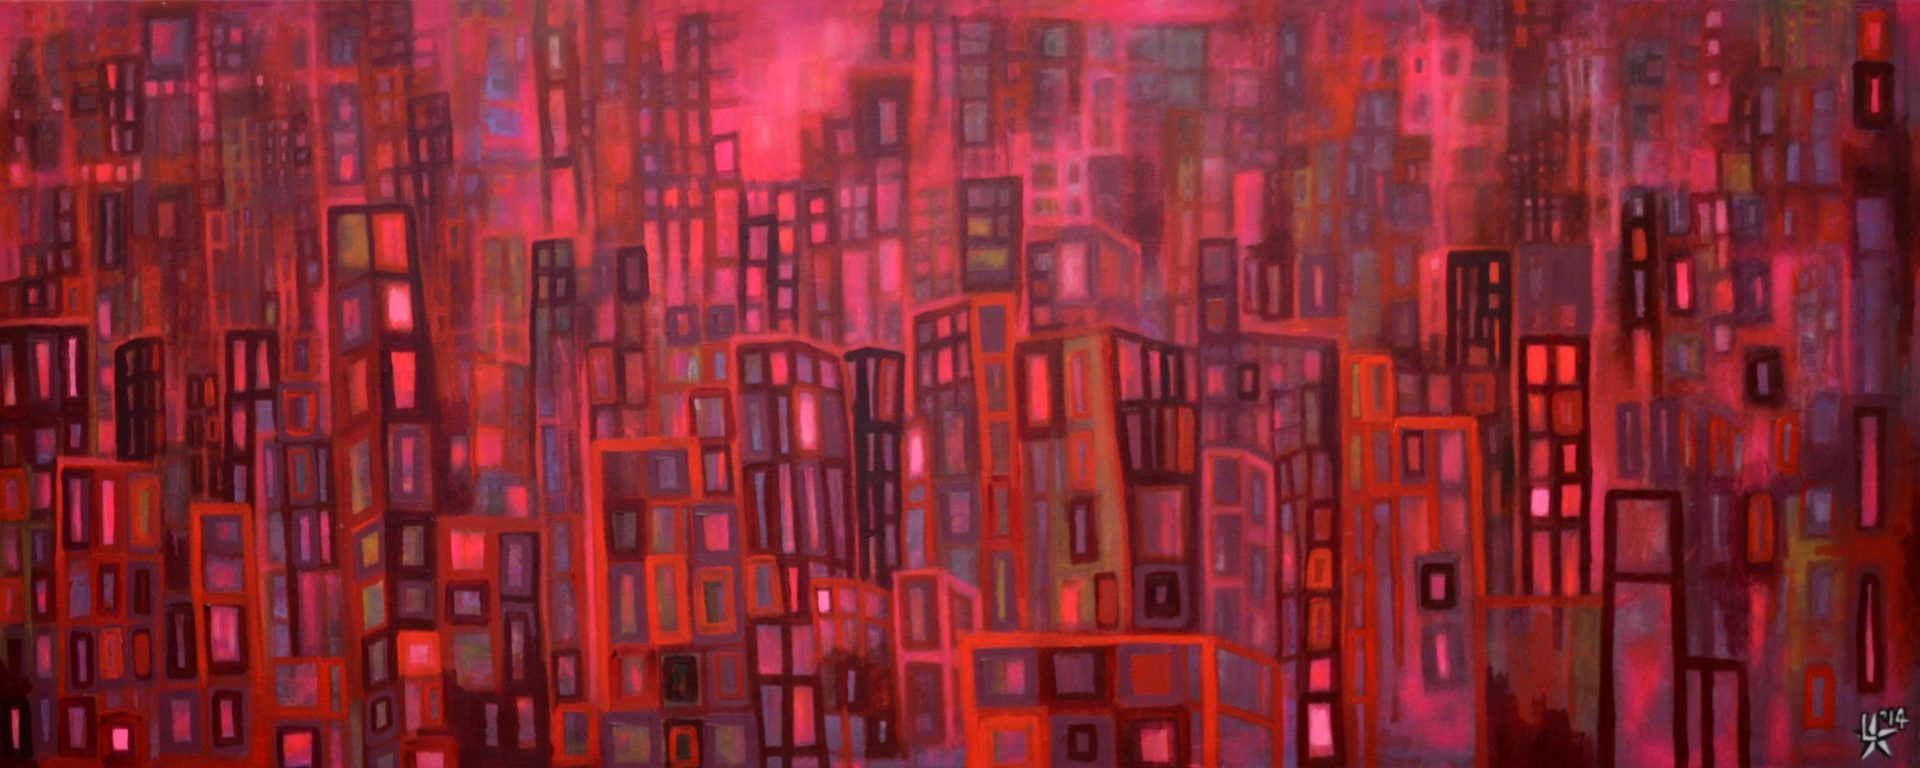 kunstenaar utrecht kunst ltuziasm l-tuziasm schilderij art artist painting urban landscape city trippin red wine mellow nights